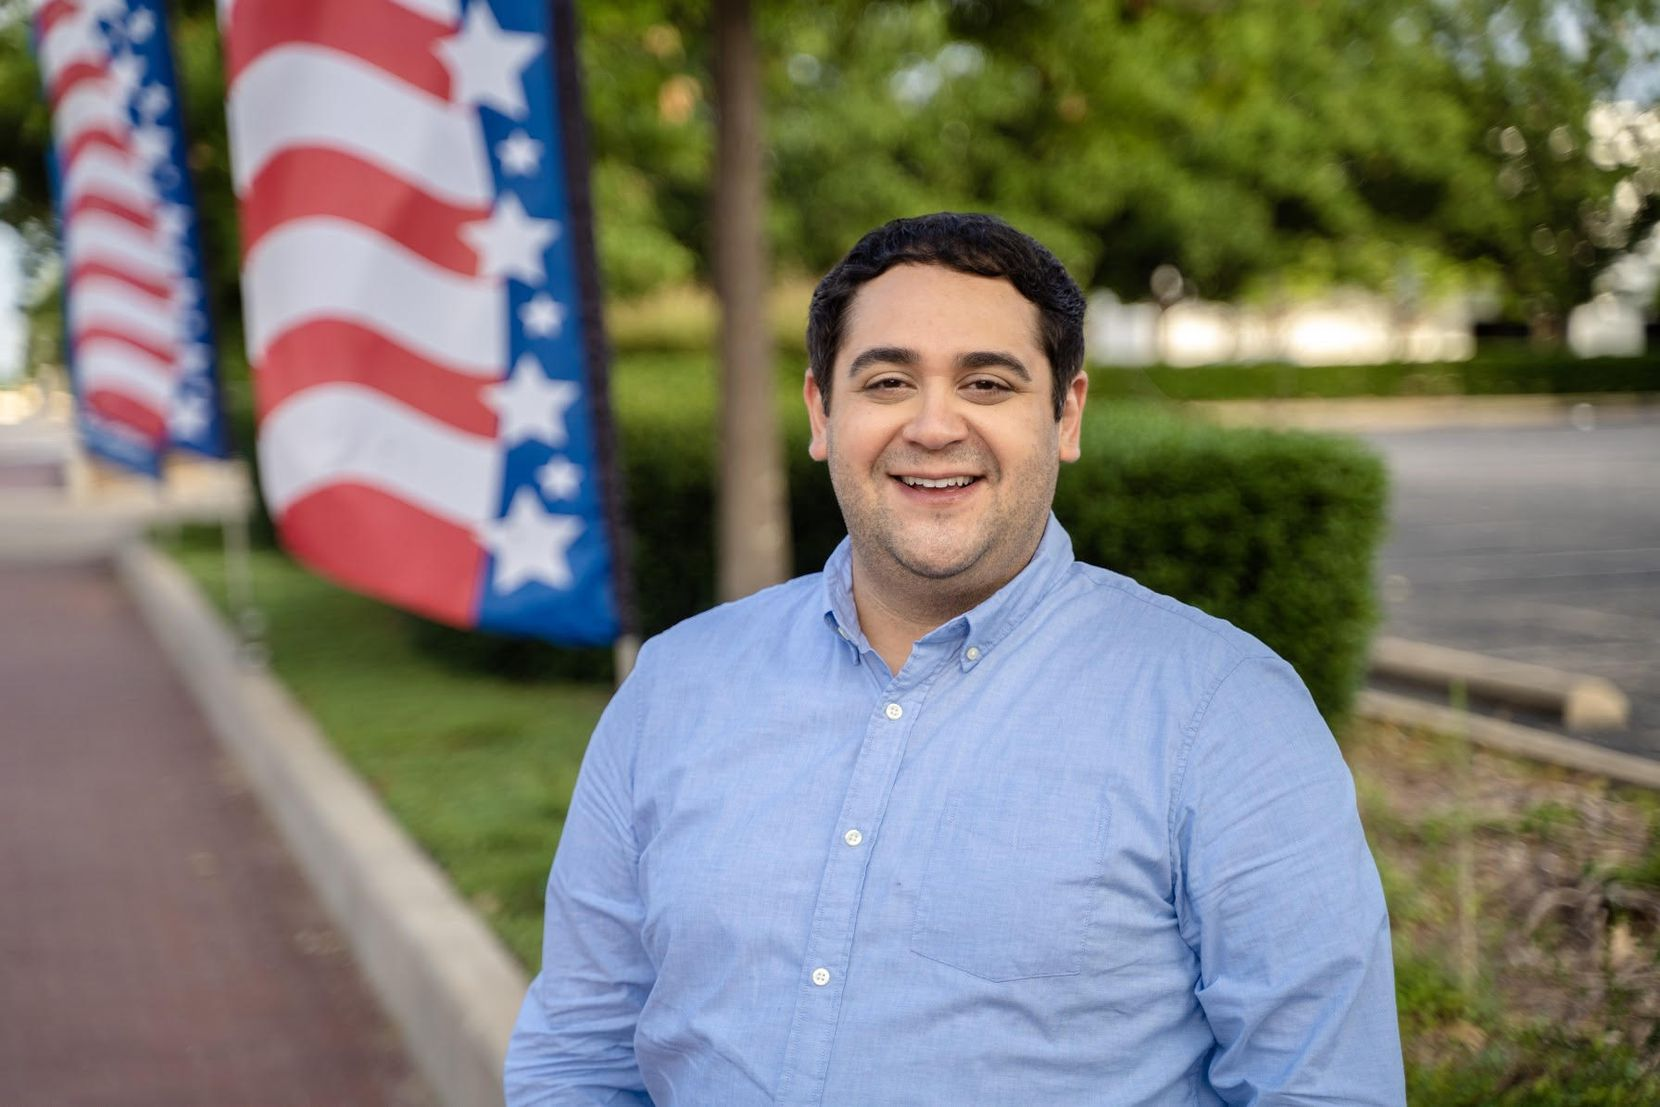 Lorenzo Sanchez is running in the Democratic primary for Texas House District 67.